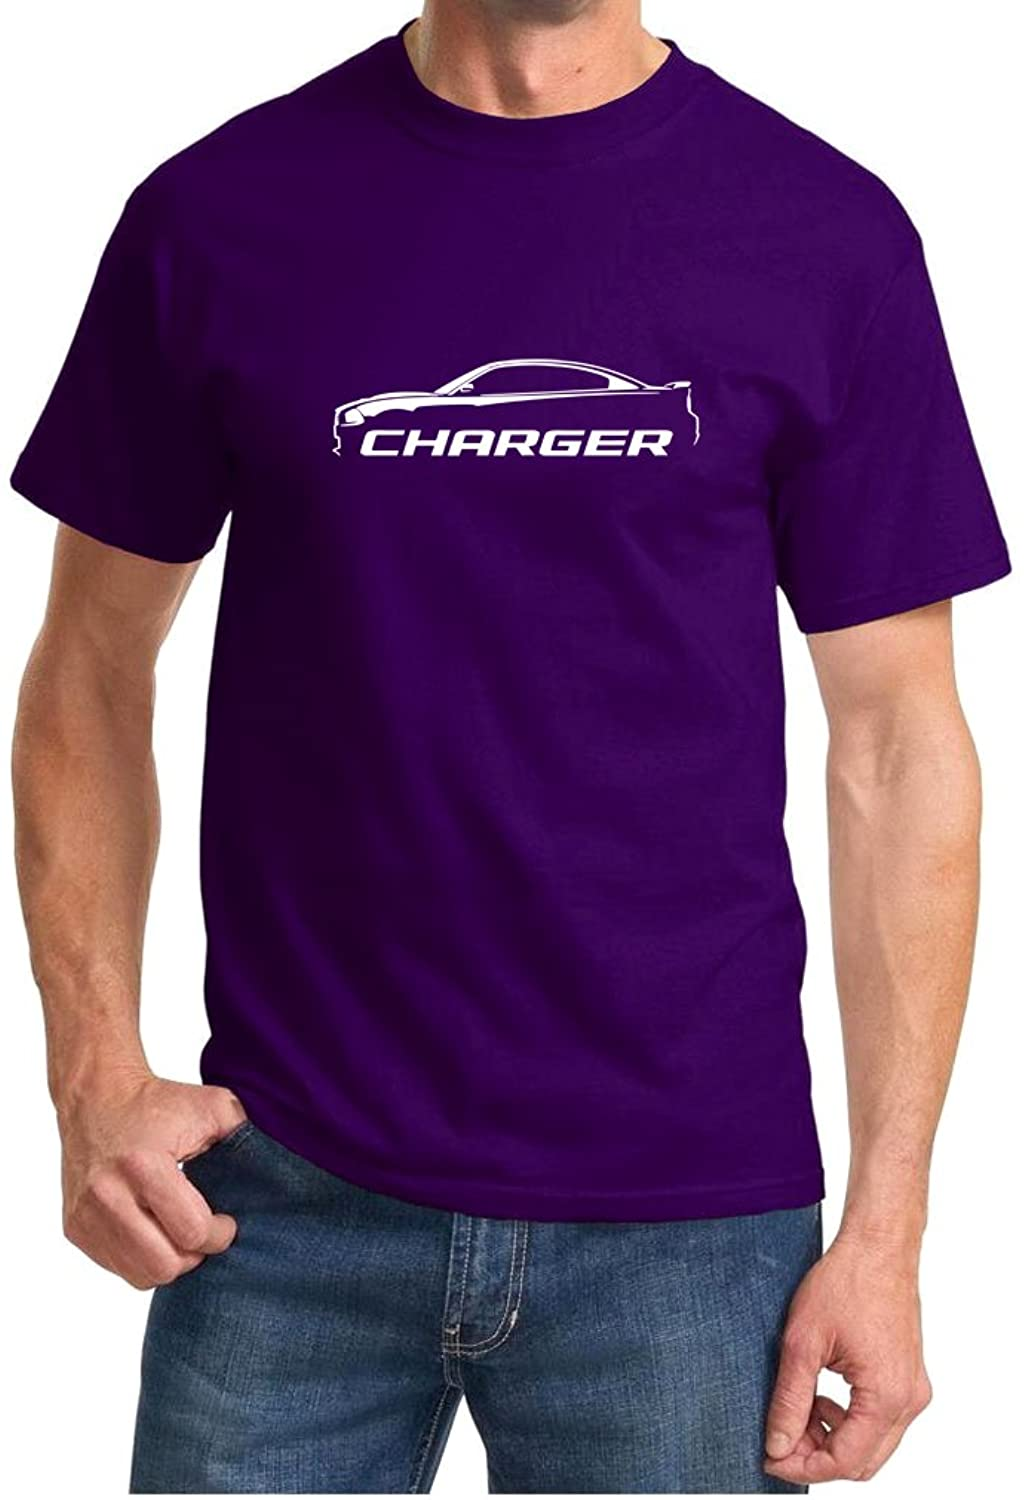 2010-14 Dodge Charger Classic Outline Design Tshirt small purple